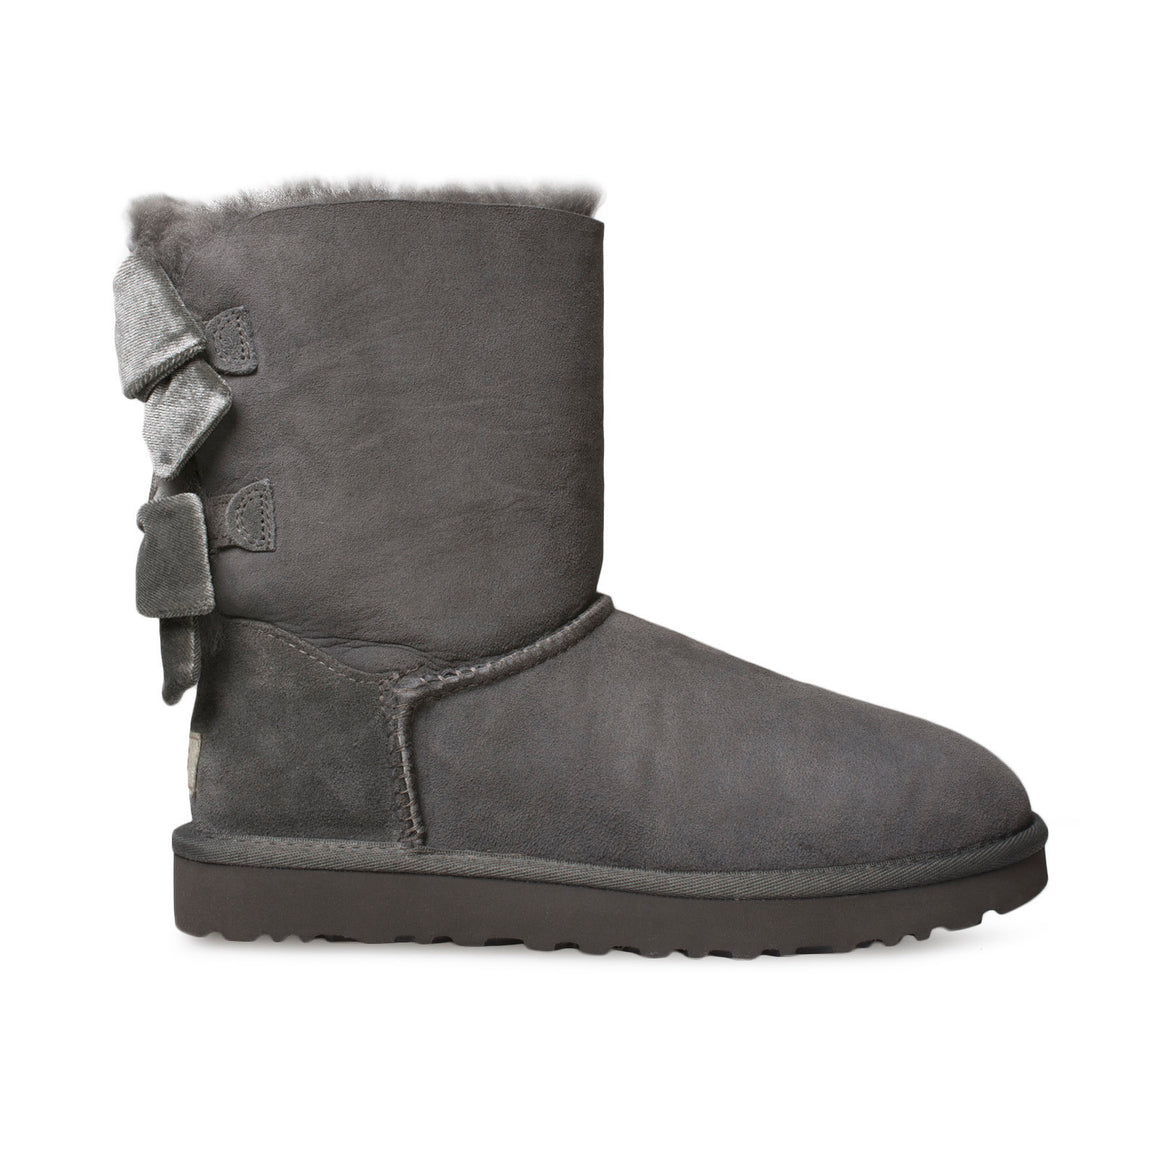 UGG Bailey Bow II Velvet Ribbon Charcoal Boots - Women's